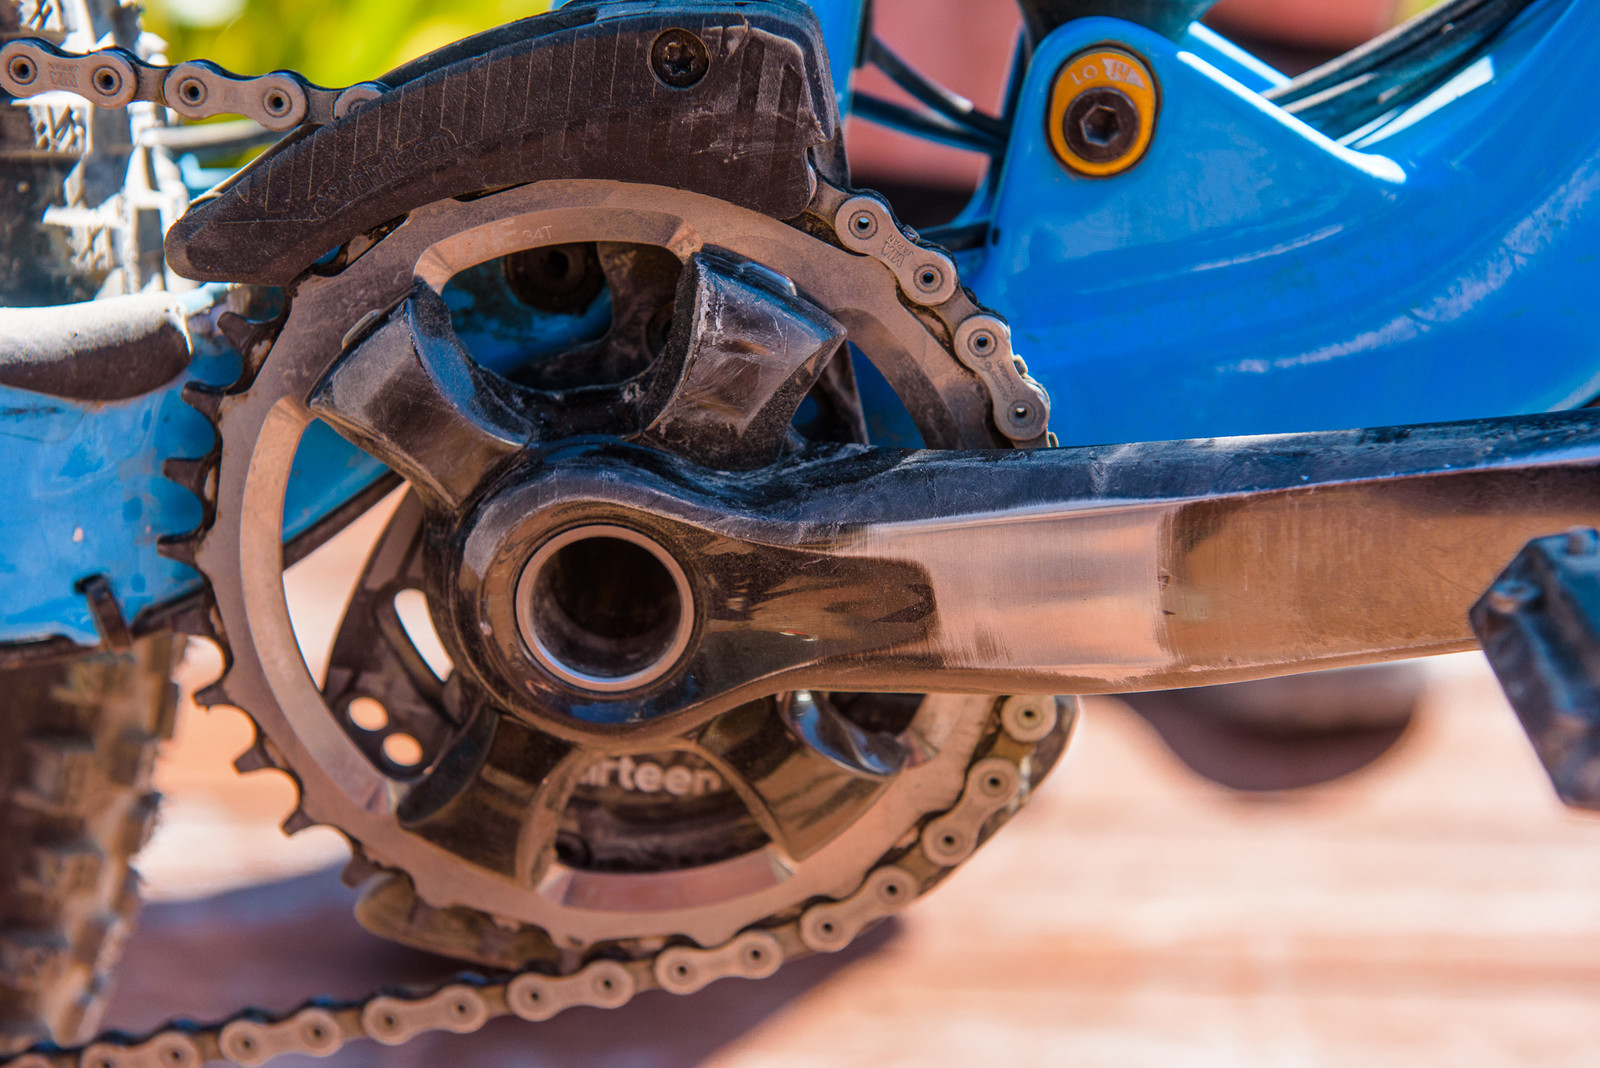 Shimano XTR Cranks - Pro Bike - Wyn Masters' GT Force, Size XL - Mountain Biking Pictures - Vital MTB